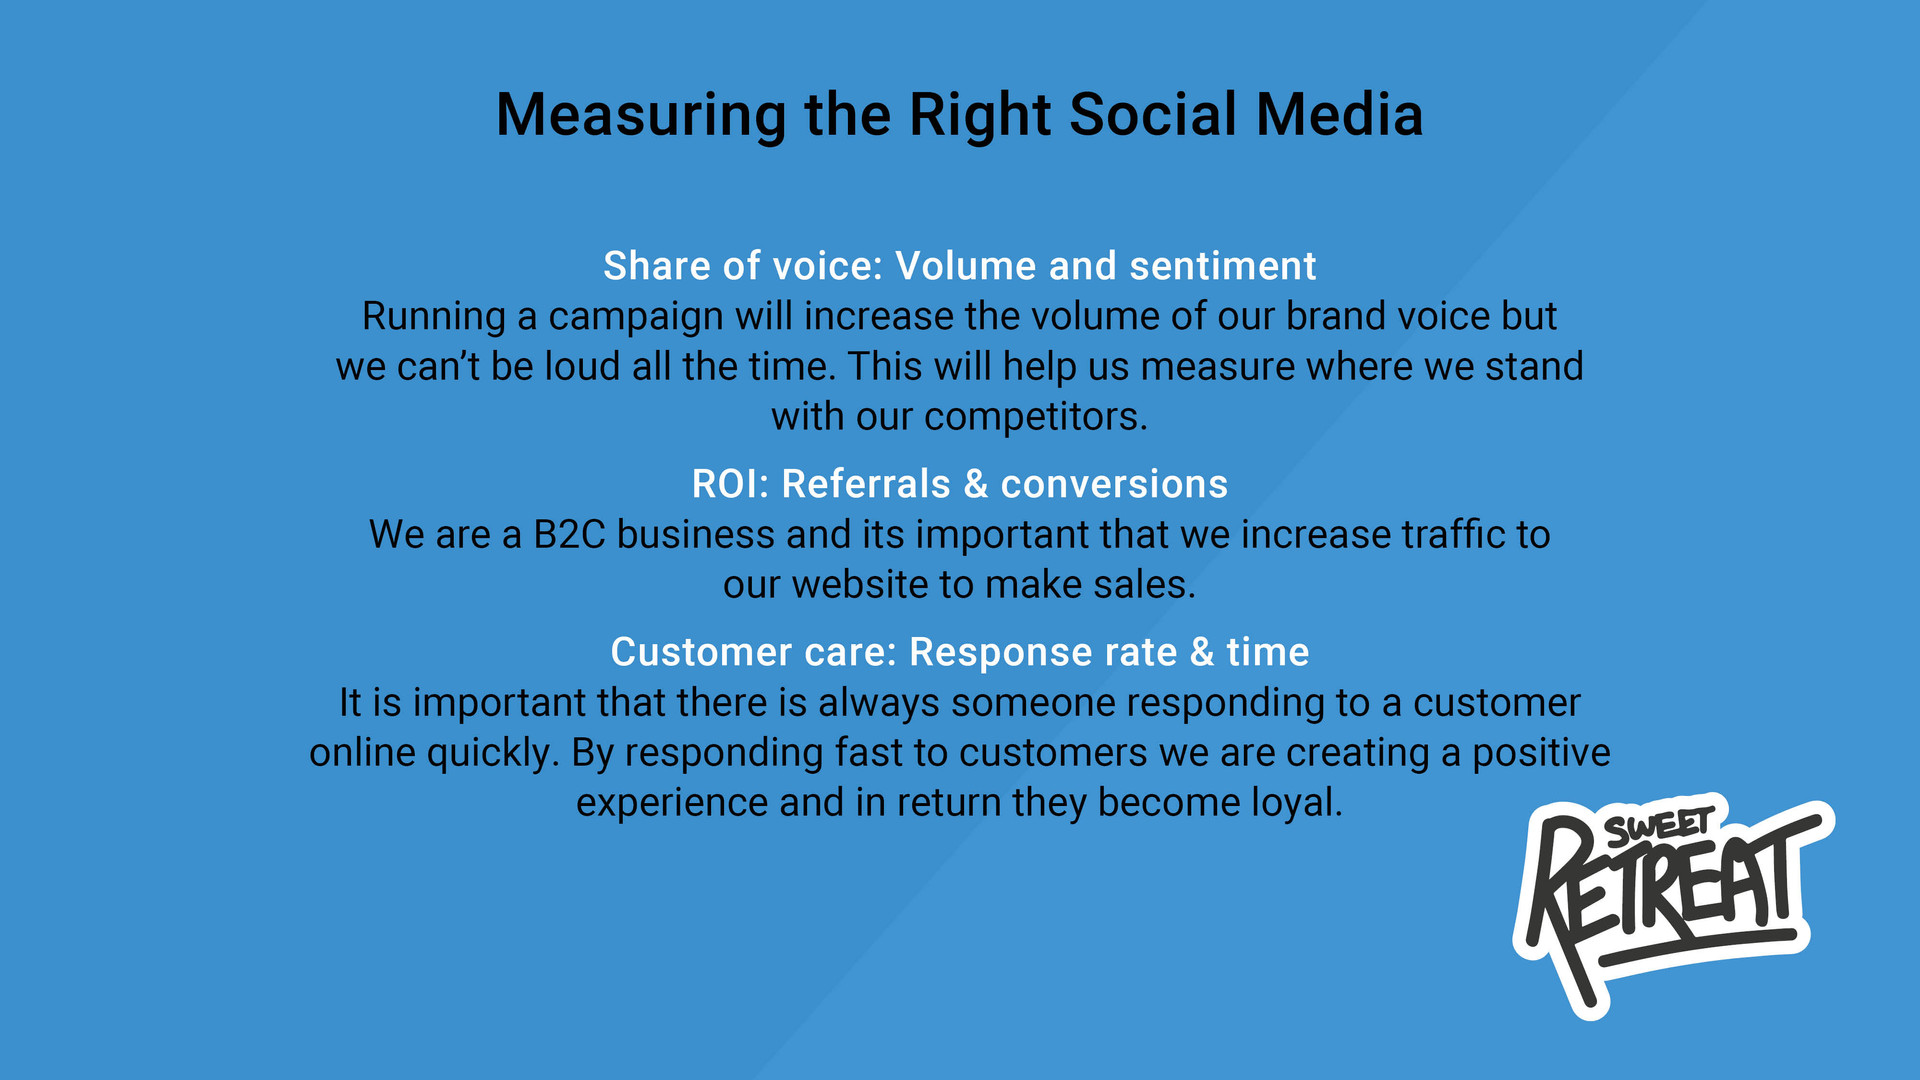 Measuring the Right Social Media